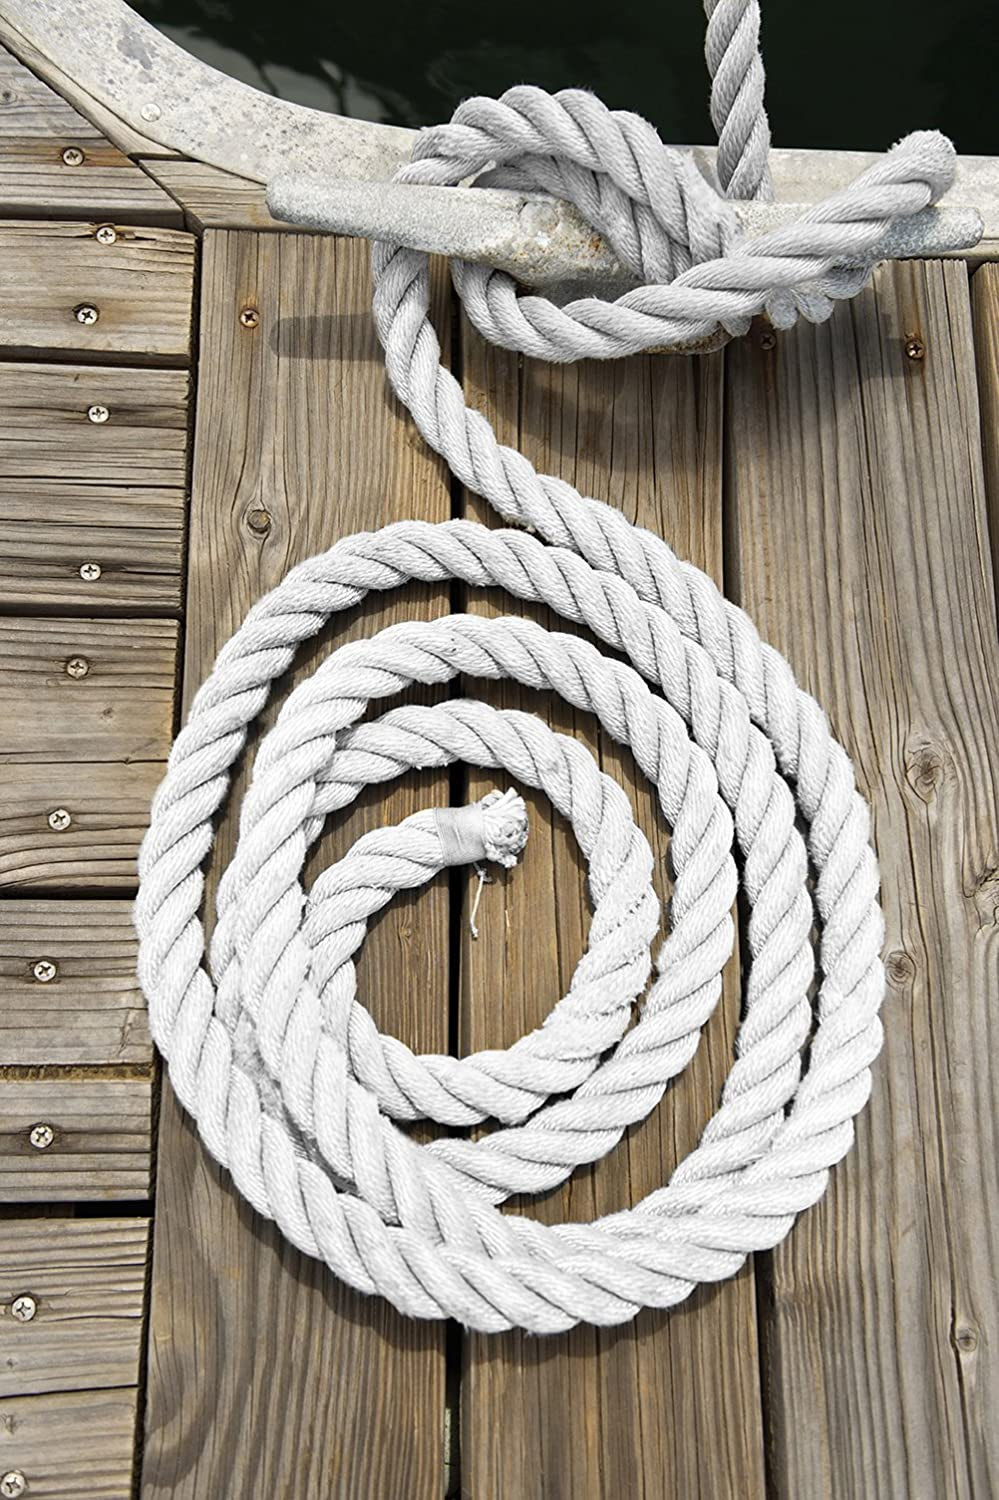 for Boats up to 35 Boat Accessories Direct 2 Boater 1//2 x 20 White 3 Strand Twisted Nylon Dock Line